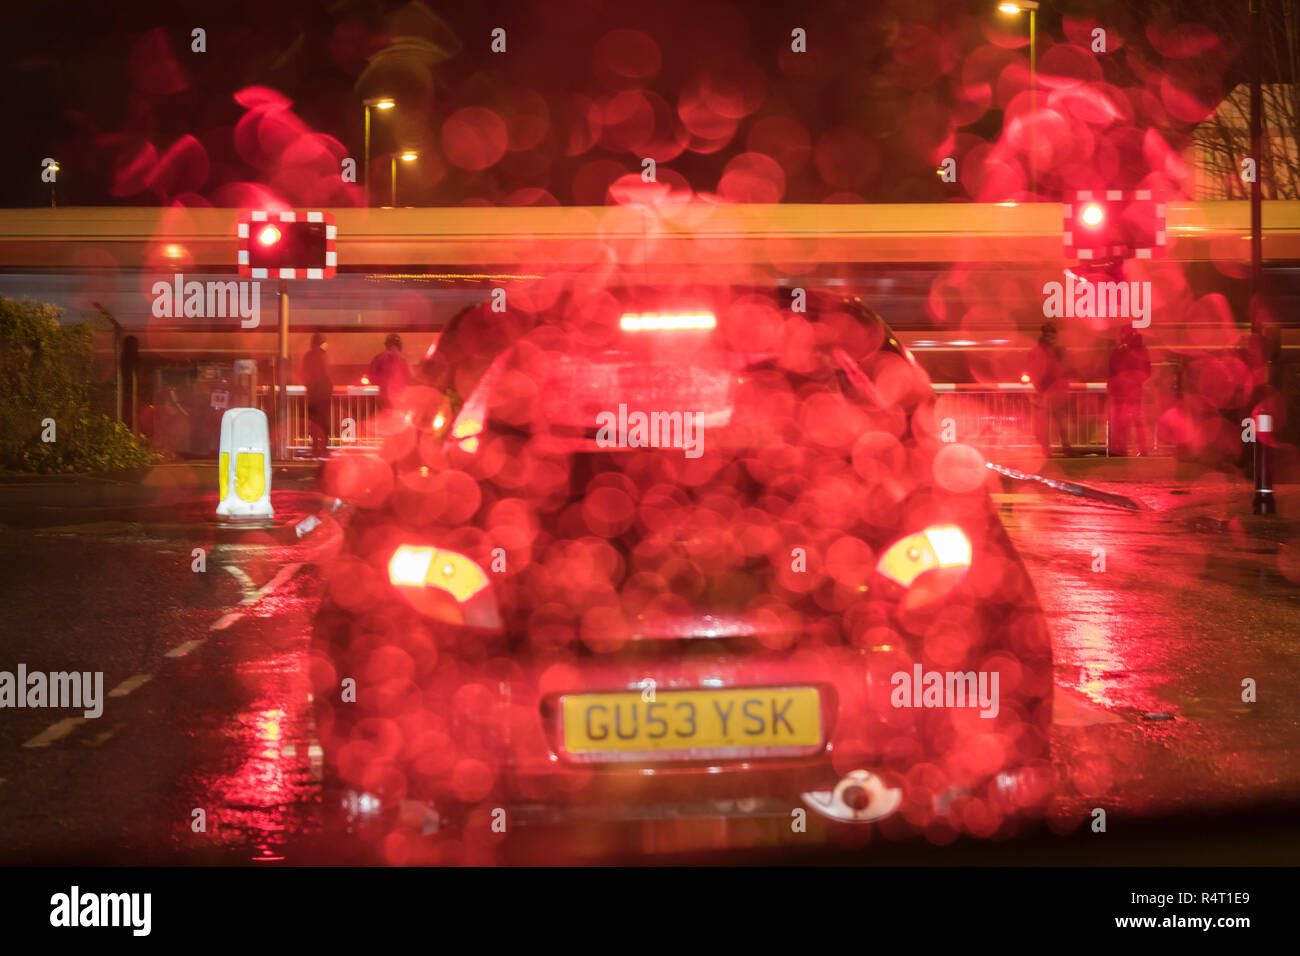 Cars waiting in line at a level crossing at night while raining, with a train moving over the crossing, in the UK. - Stock Image